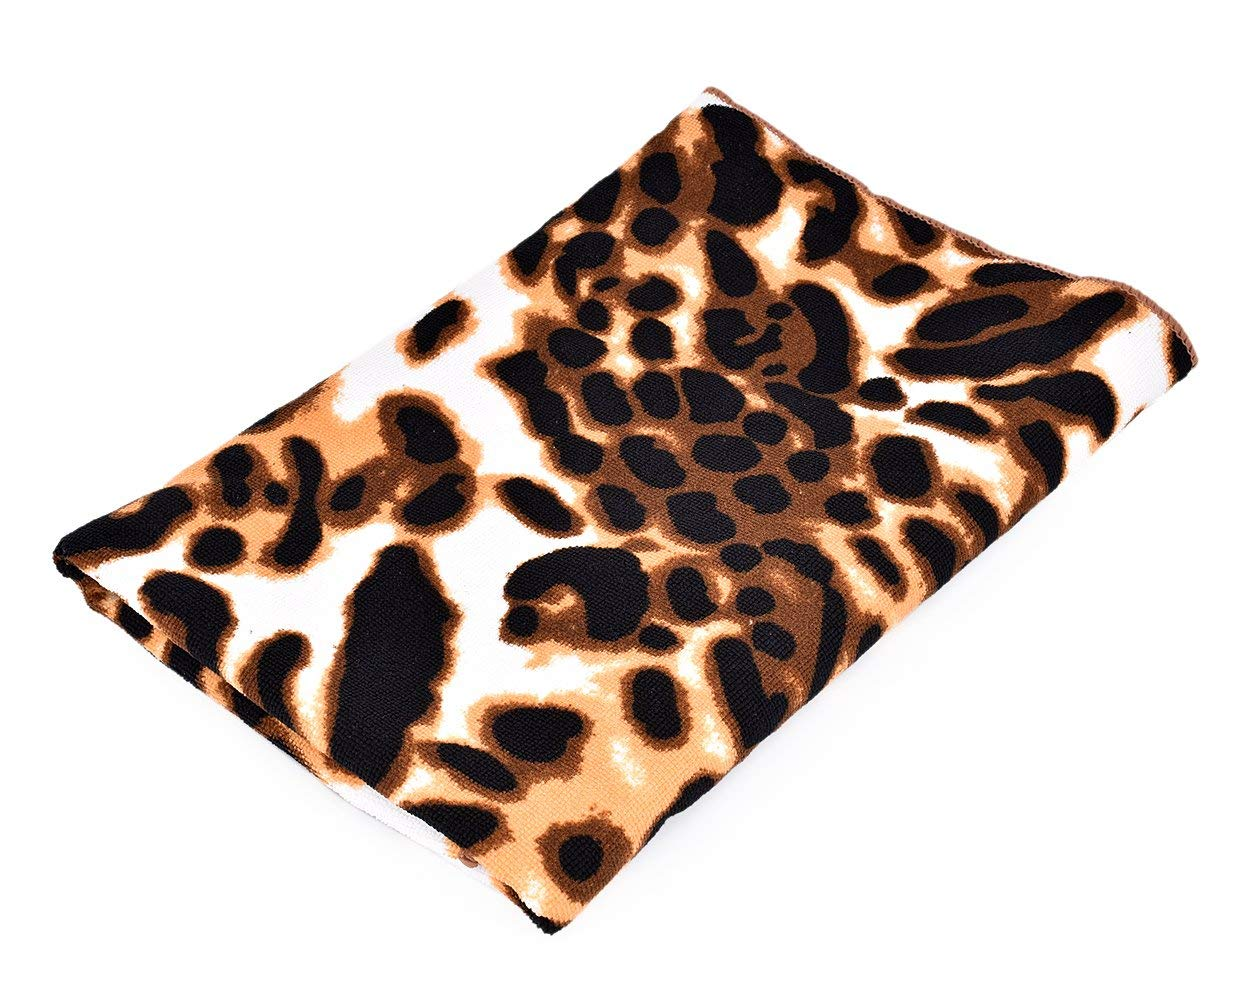 2fb3f2850d4a Get Quotations · Ace Select Extra Large Bath Towel Chic Leopard Print  Extra-absorbent Microfiber Soft Travel